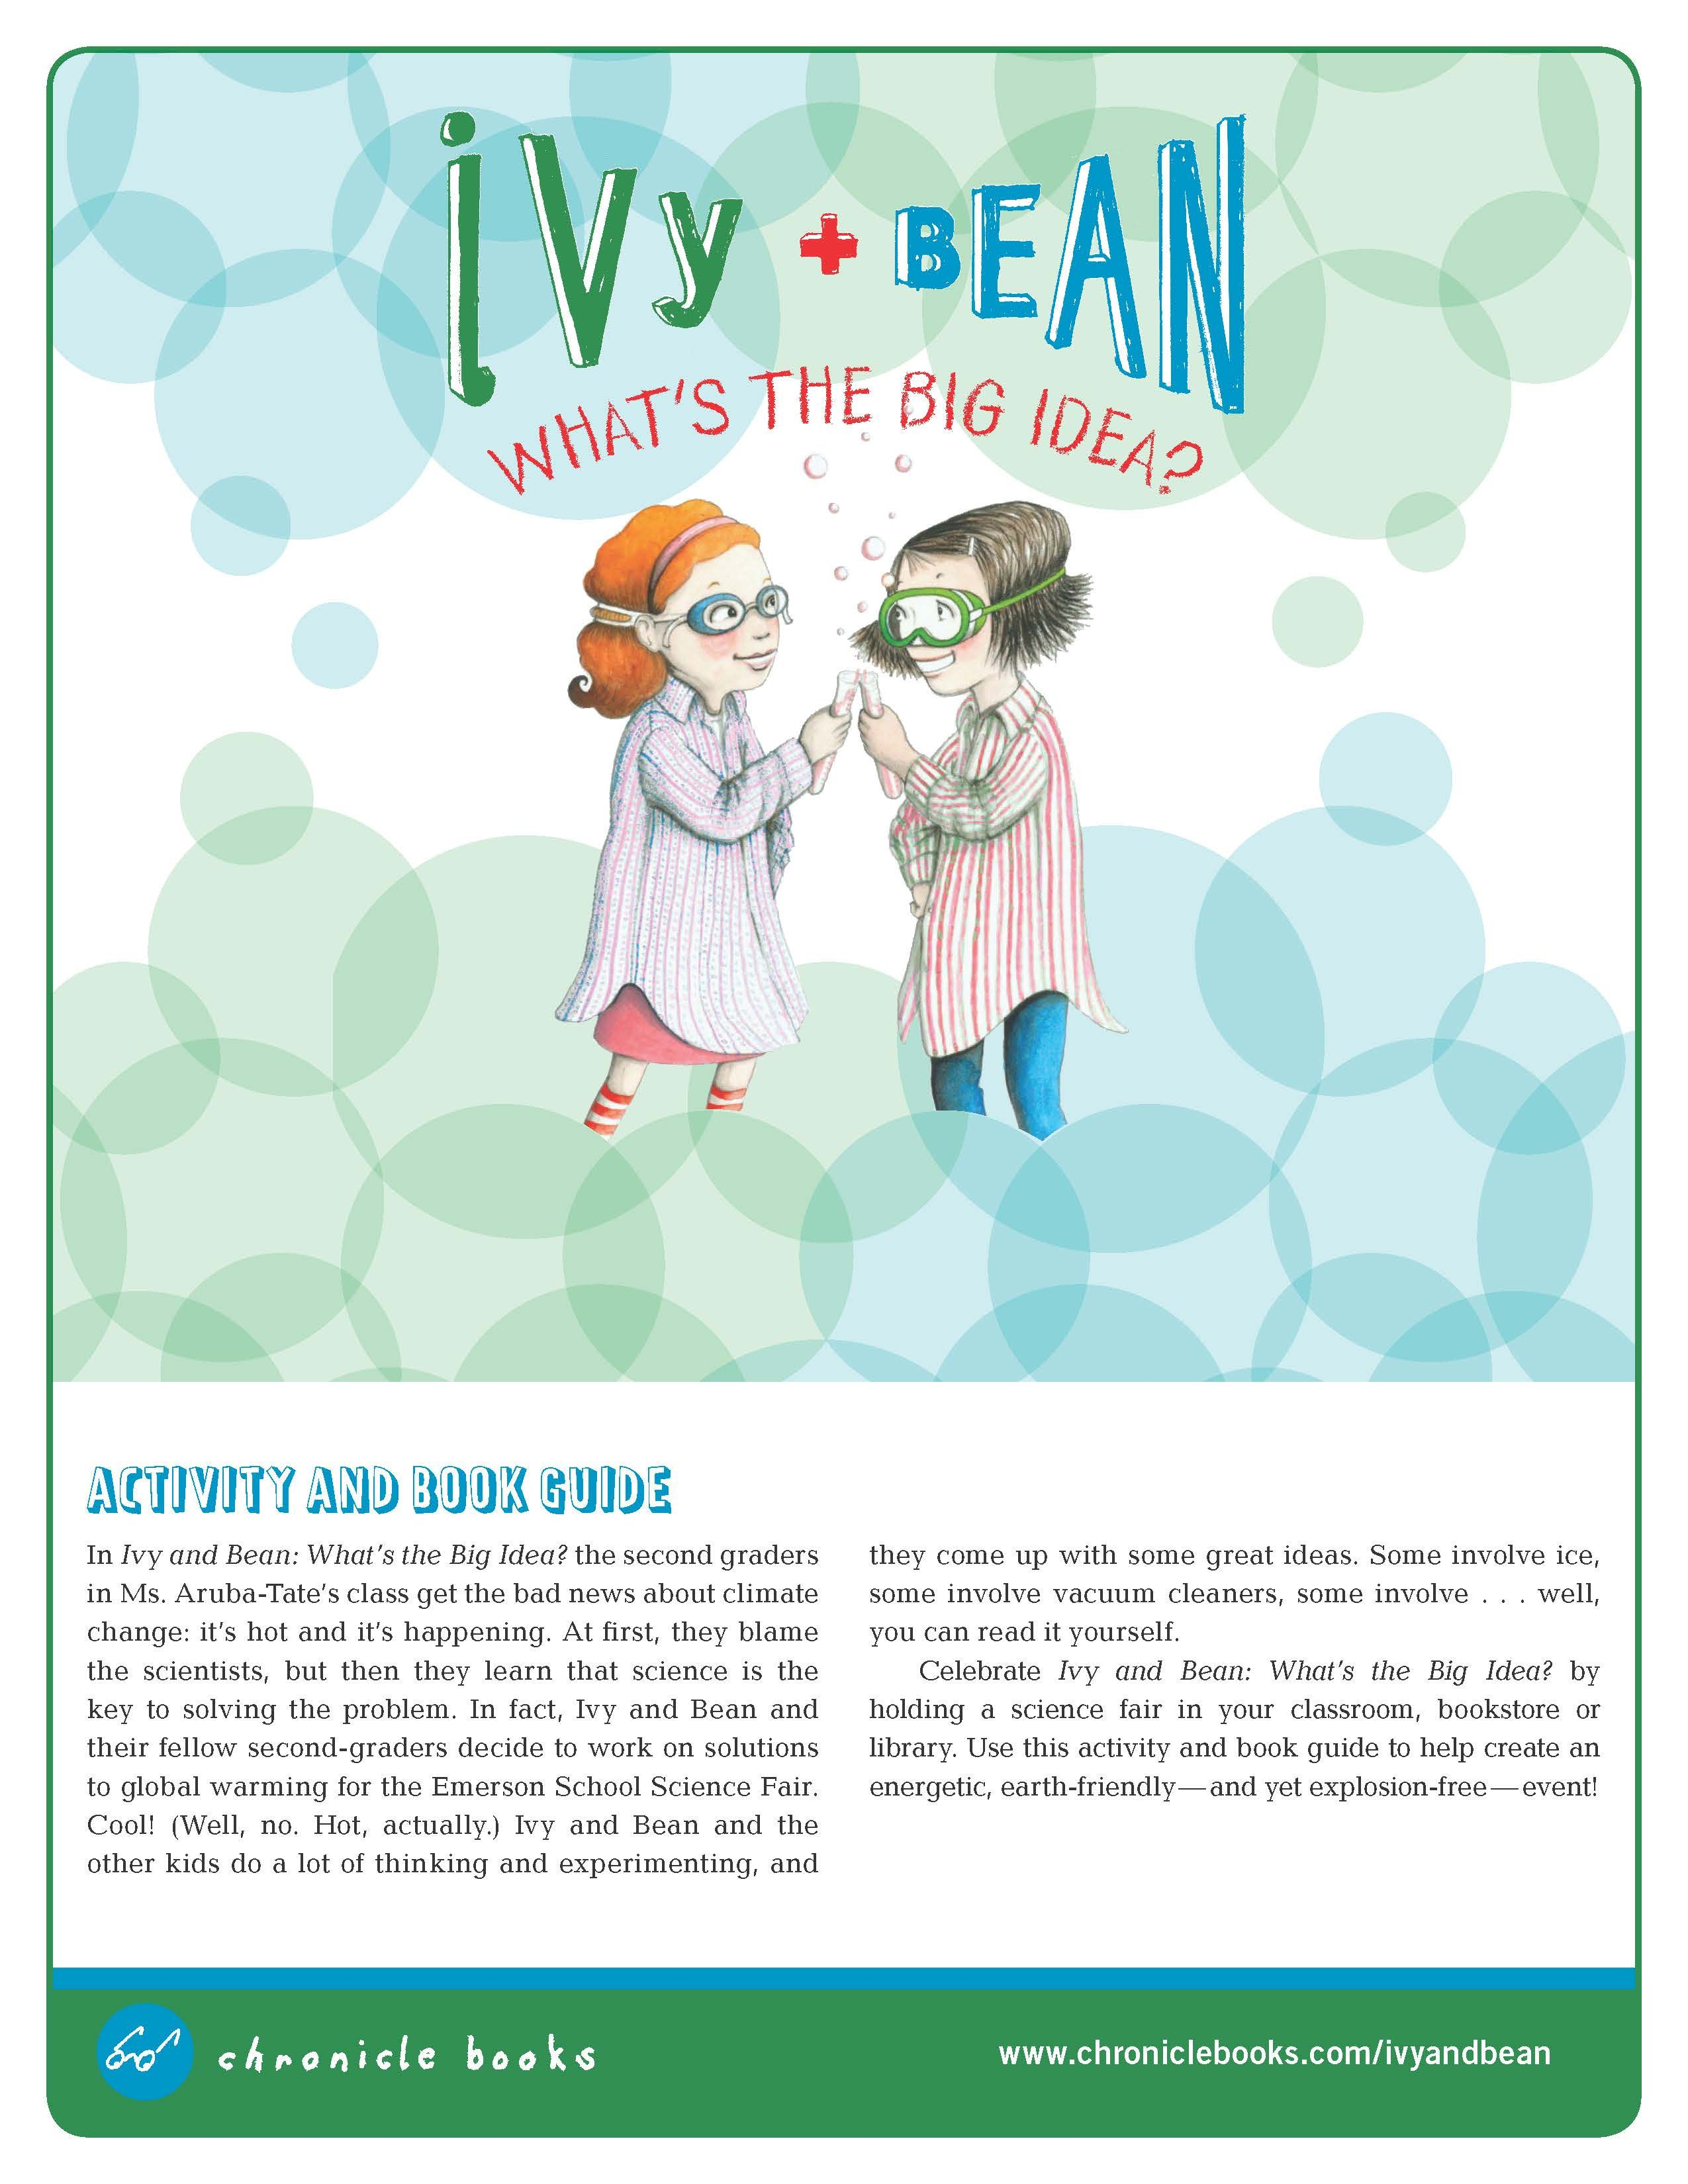 Ivy and Bean What's the Big Idea Science Fair Activity Kit